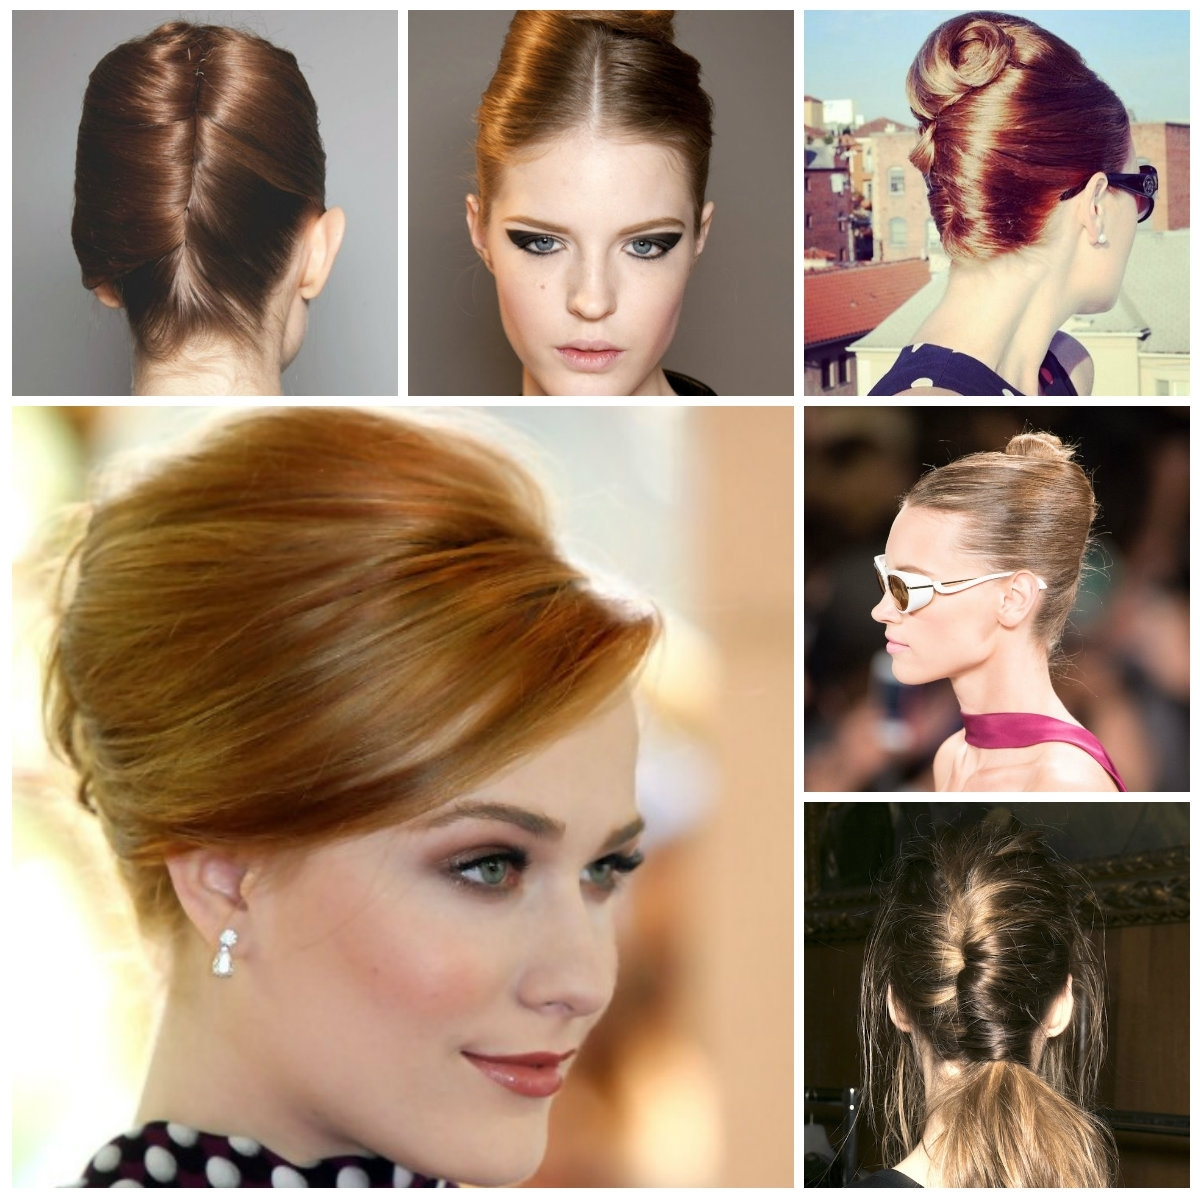 2017 Trendy French Twist Hairstyles | New Haircuts To Try For 2018 With Trendy Updo Hairstyles For Long Hair (View 1 of 15)